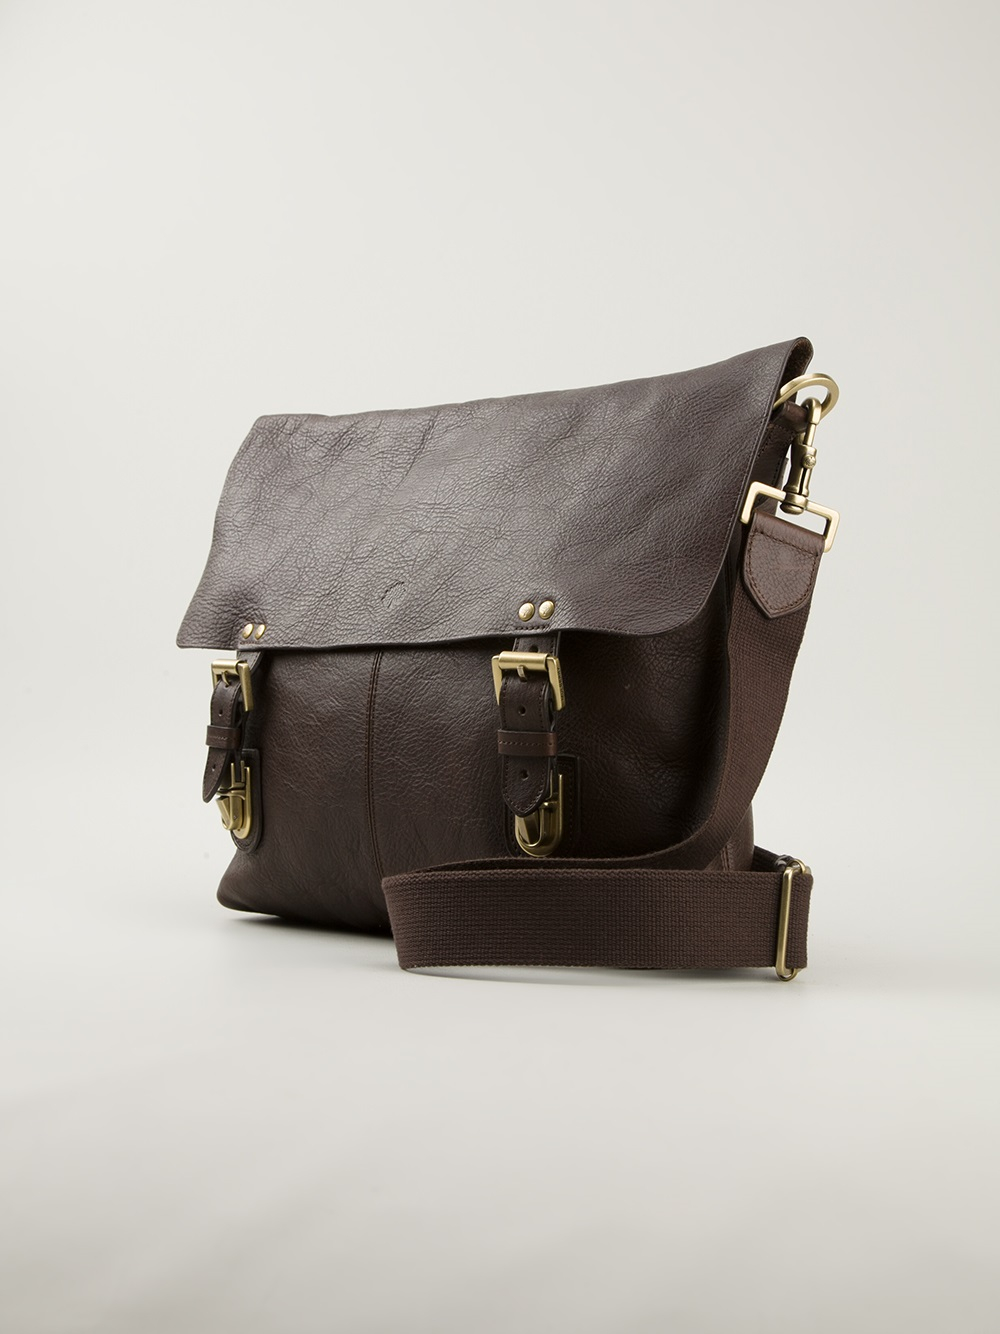 Bag At You Fashion Blog Hip E Bags White Backpack: Mulberry Rockley Messenger Bag In Brown For Men